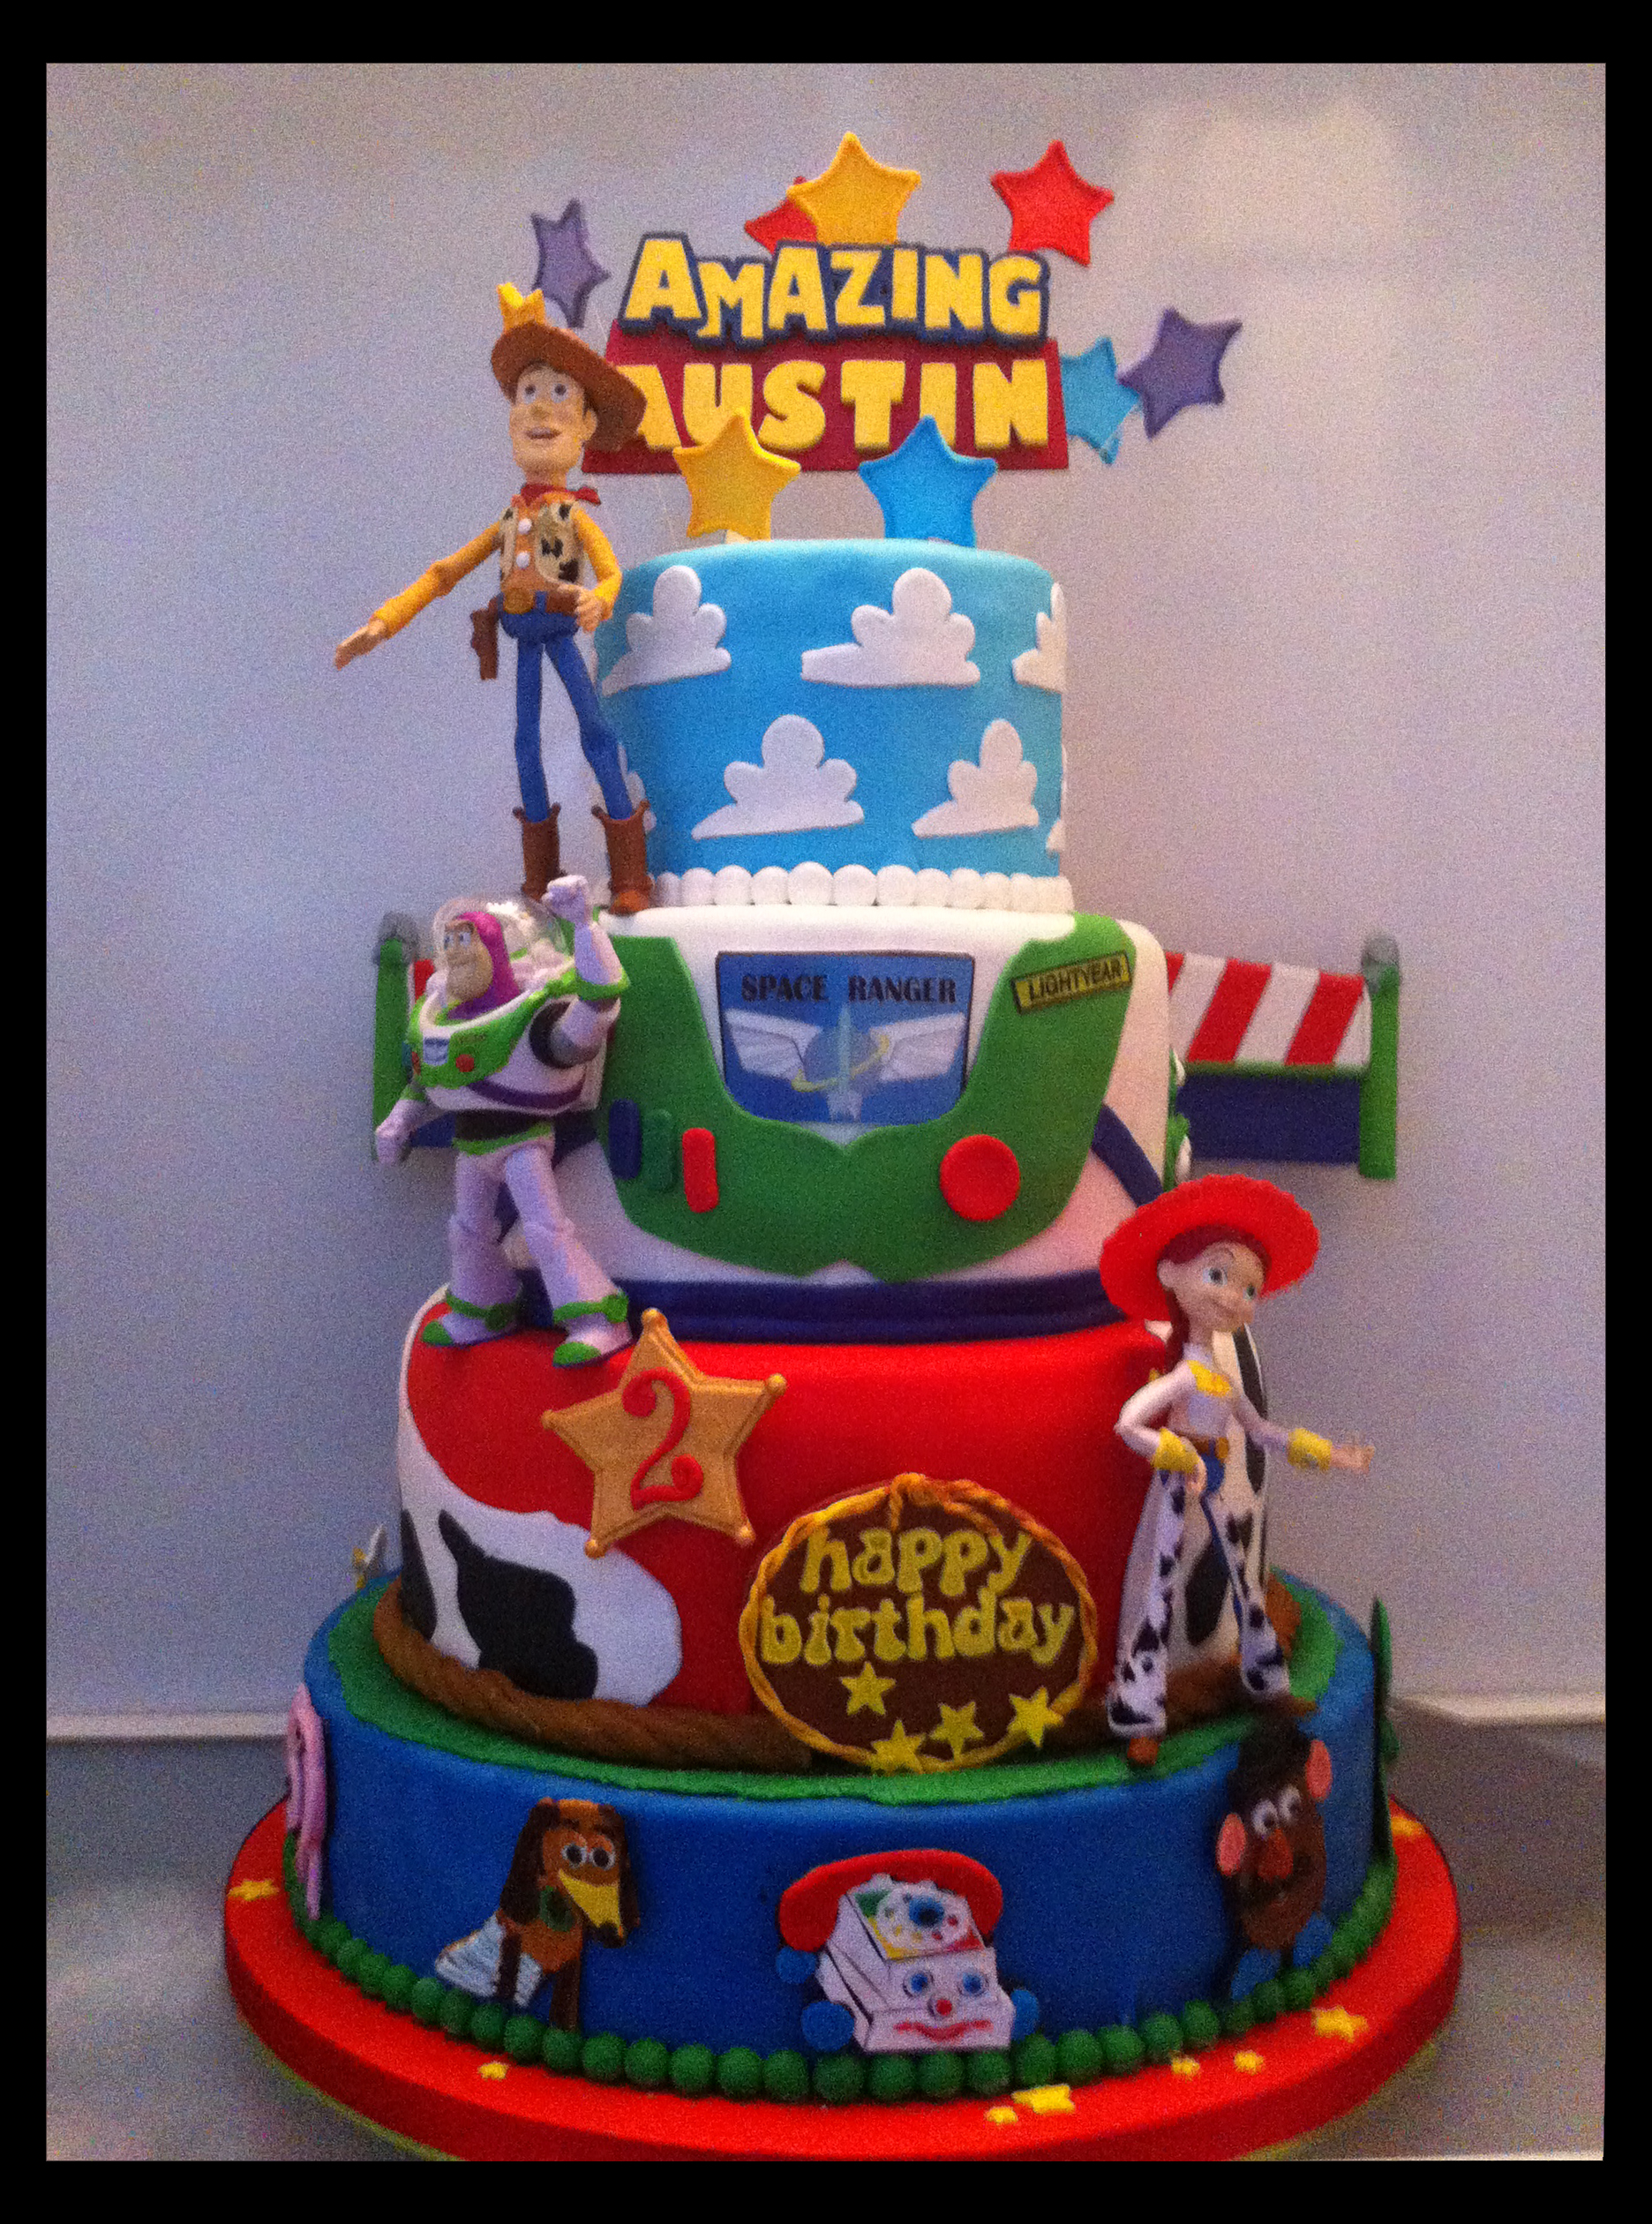 Amazing Austins Toy Story Birthday Cake